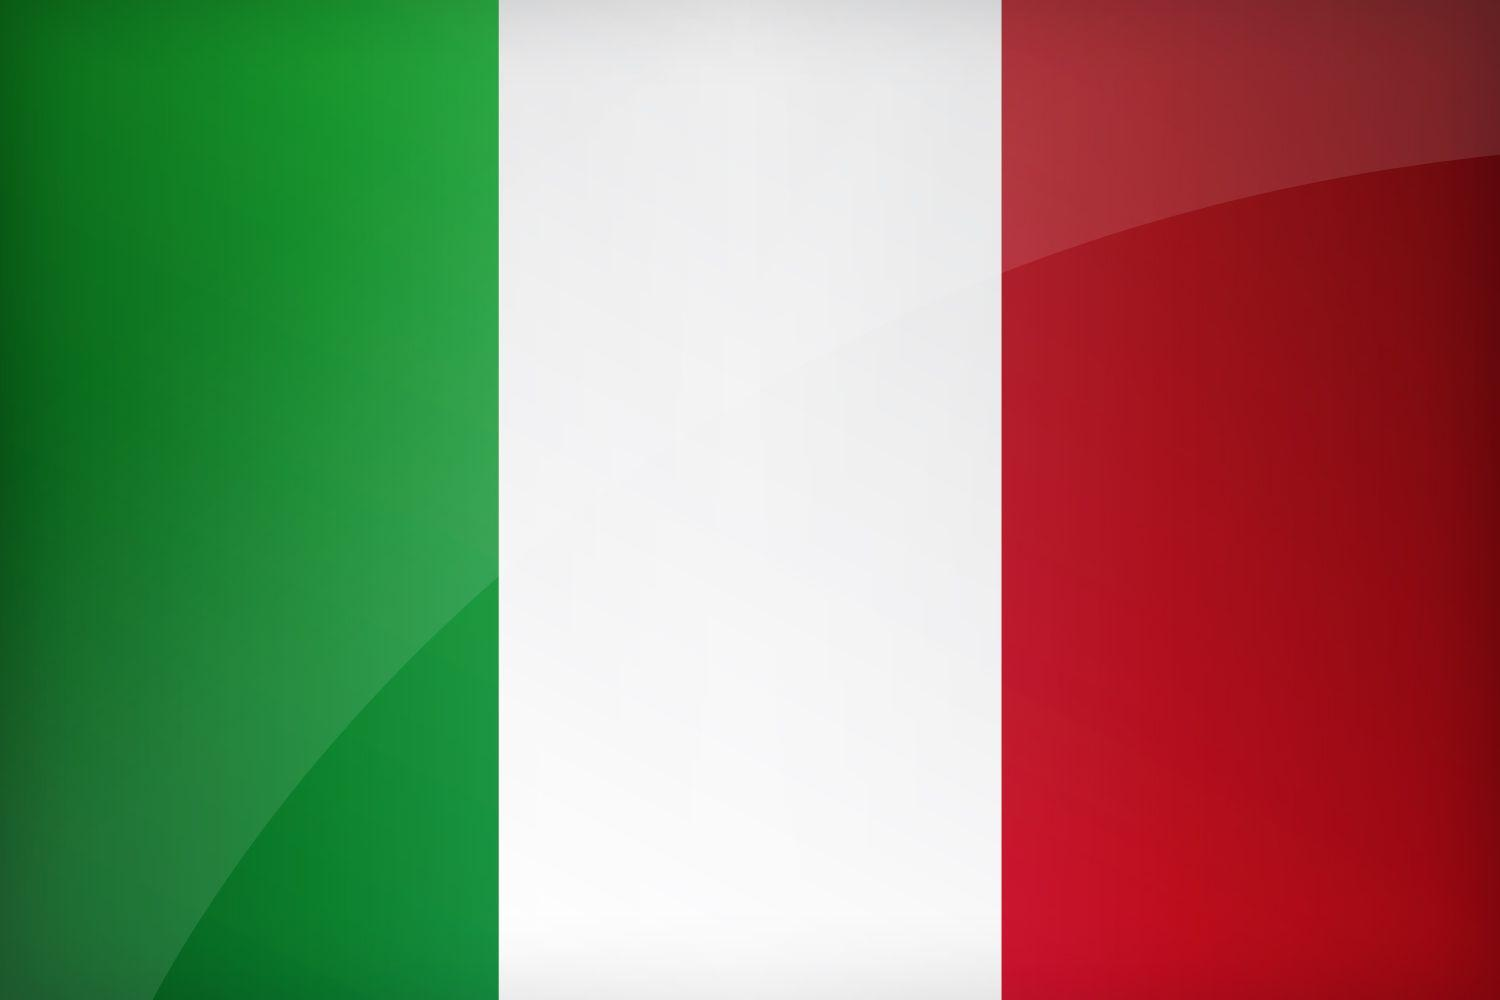 Flag of Italy | Find the best design for Italian Flag